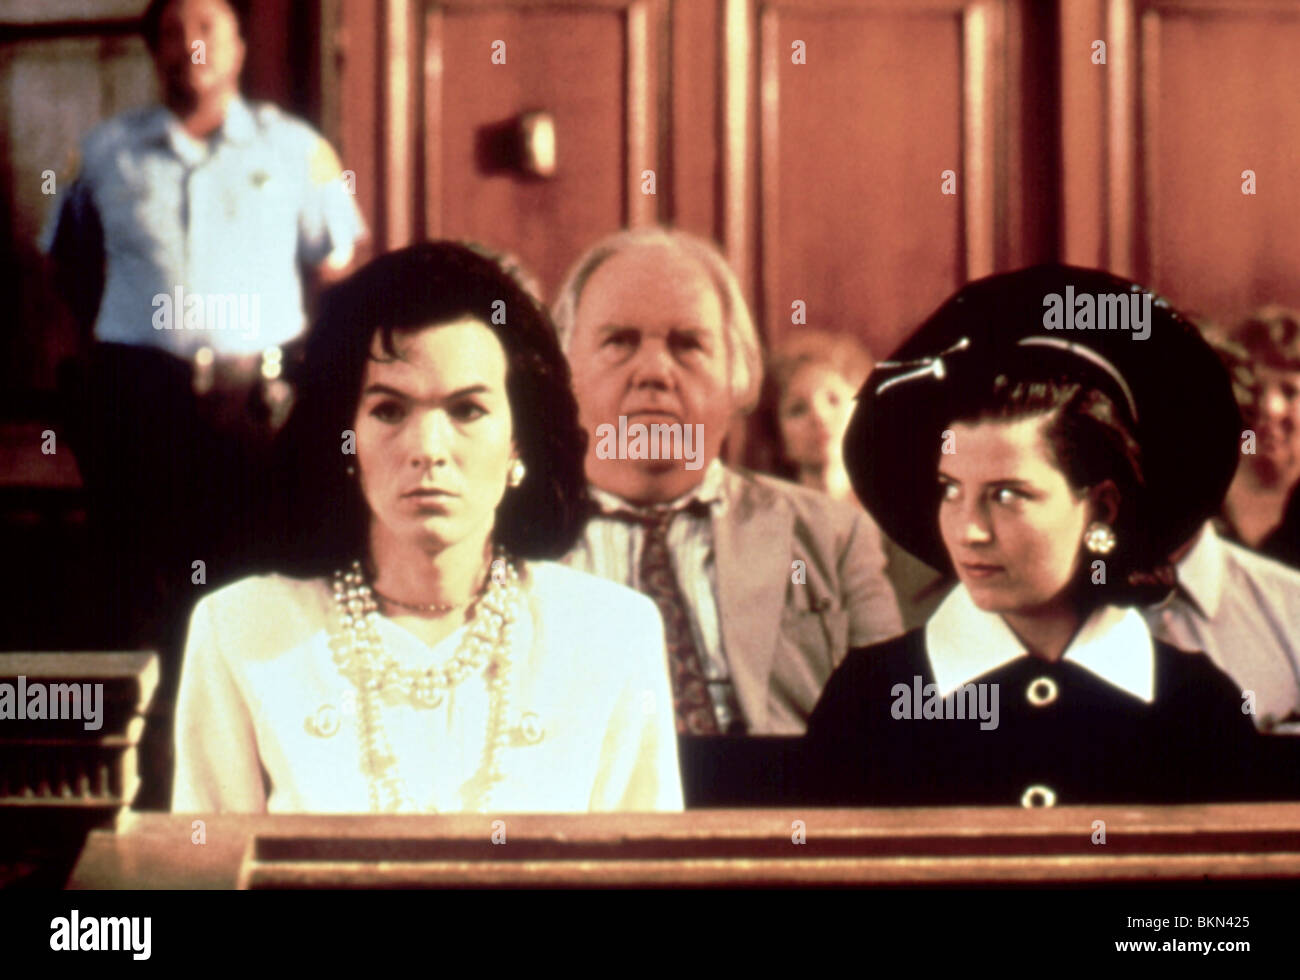 STORYVILLE -1992 - Stock Image